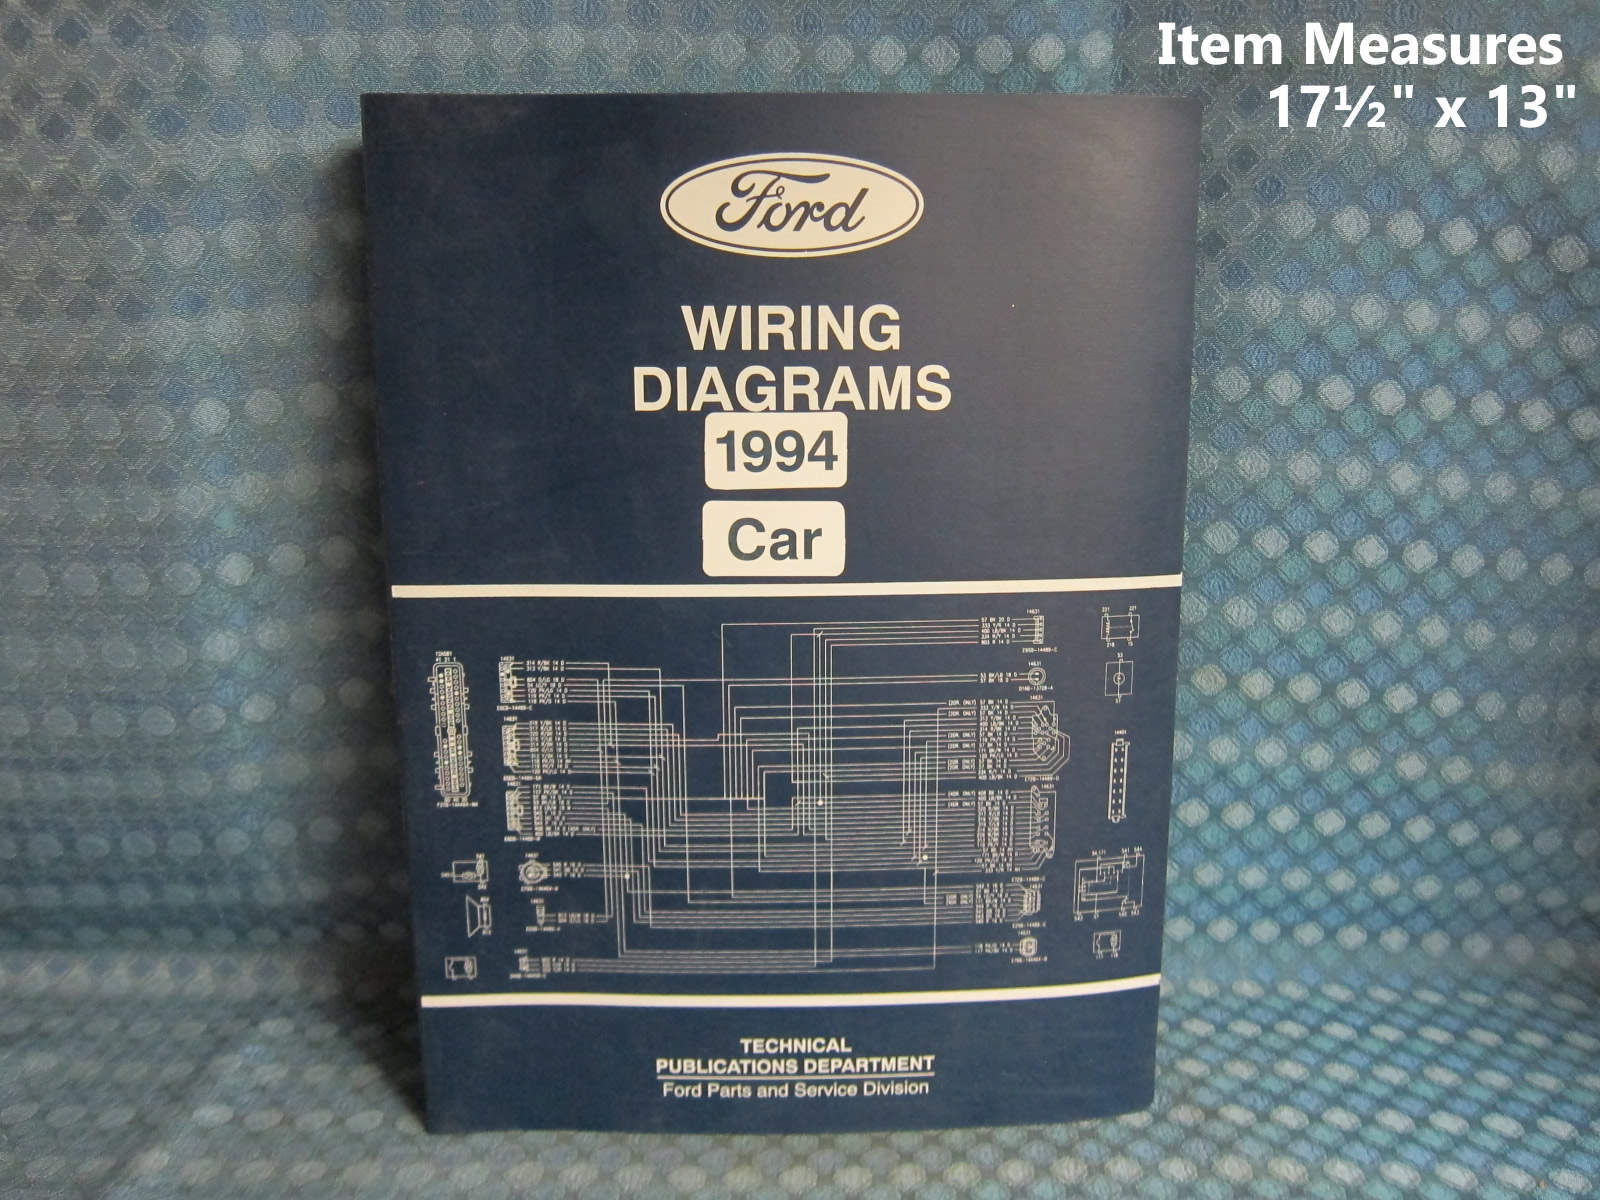 1994 Ford Lincoln Mercury Car Original Wiring Diagrams Manual 1956 Diagram Mustang Cougar Nos Texas Parts Llc Antique Auto